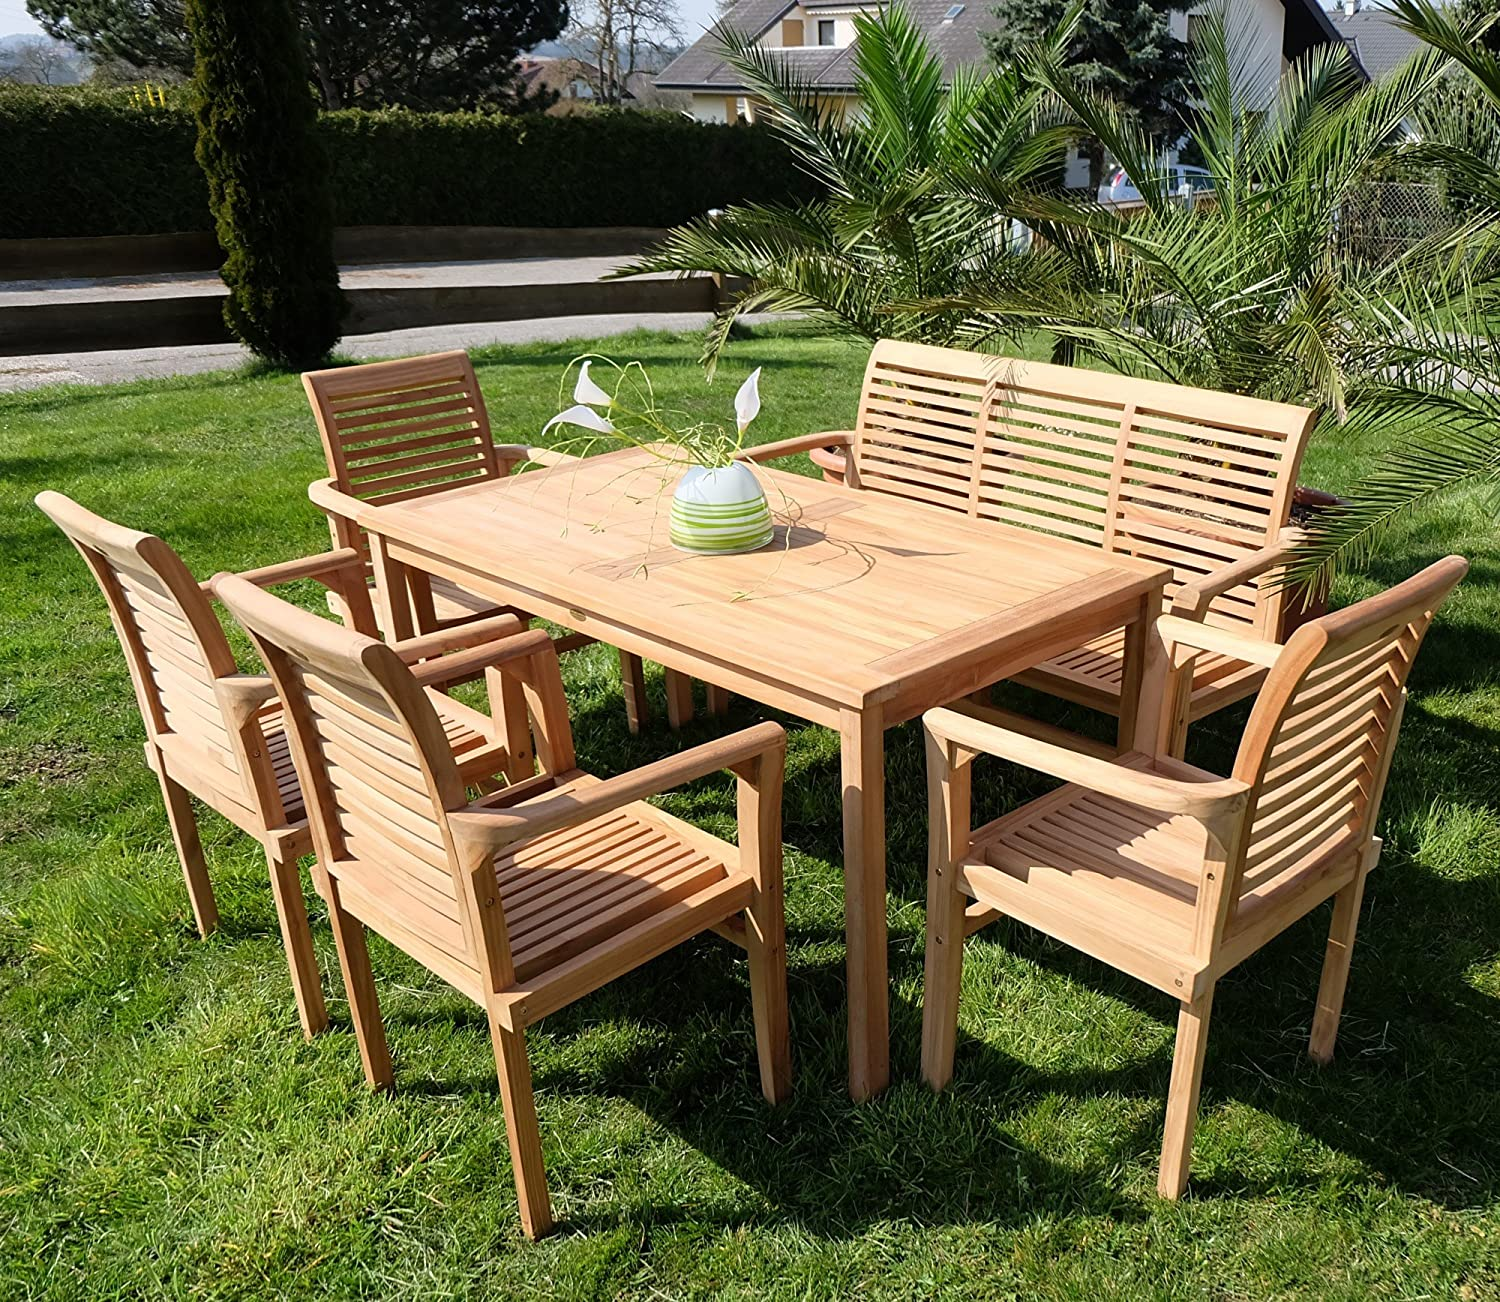 edle teak xxl gartengarnitur gartenset sitzgruppe gartenm bel tisch 1 bank 4 sessel 39 alpen. Black Bedroom Furniture Sets. Home Design Ideas